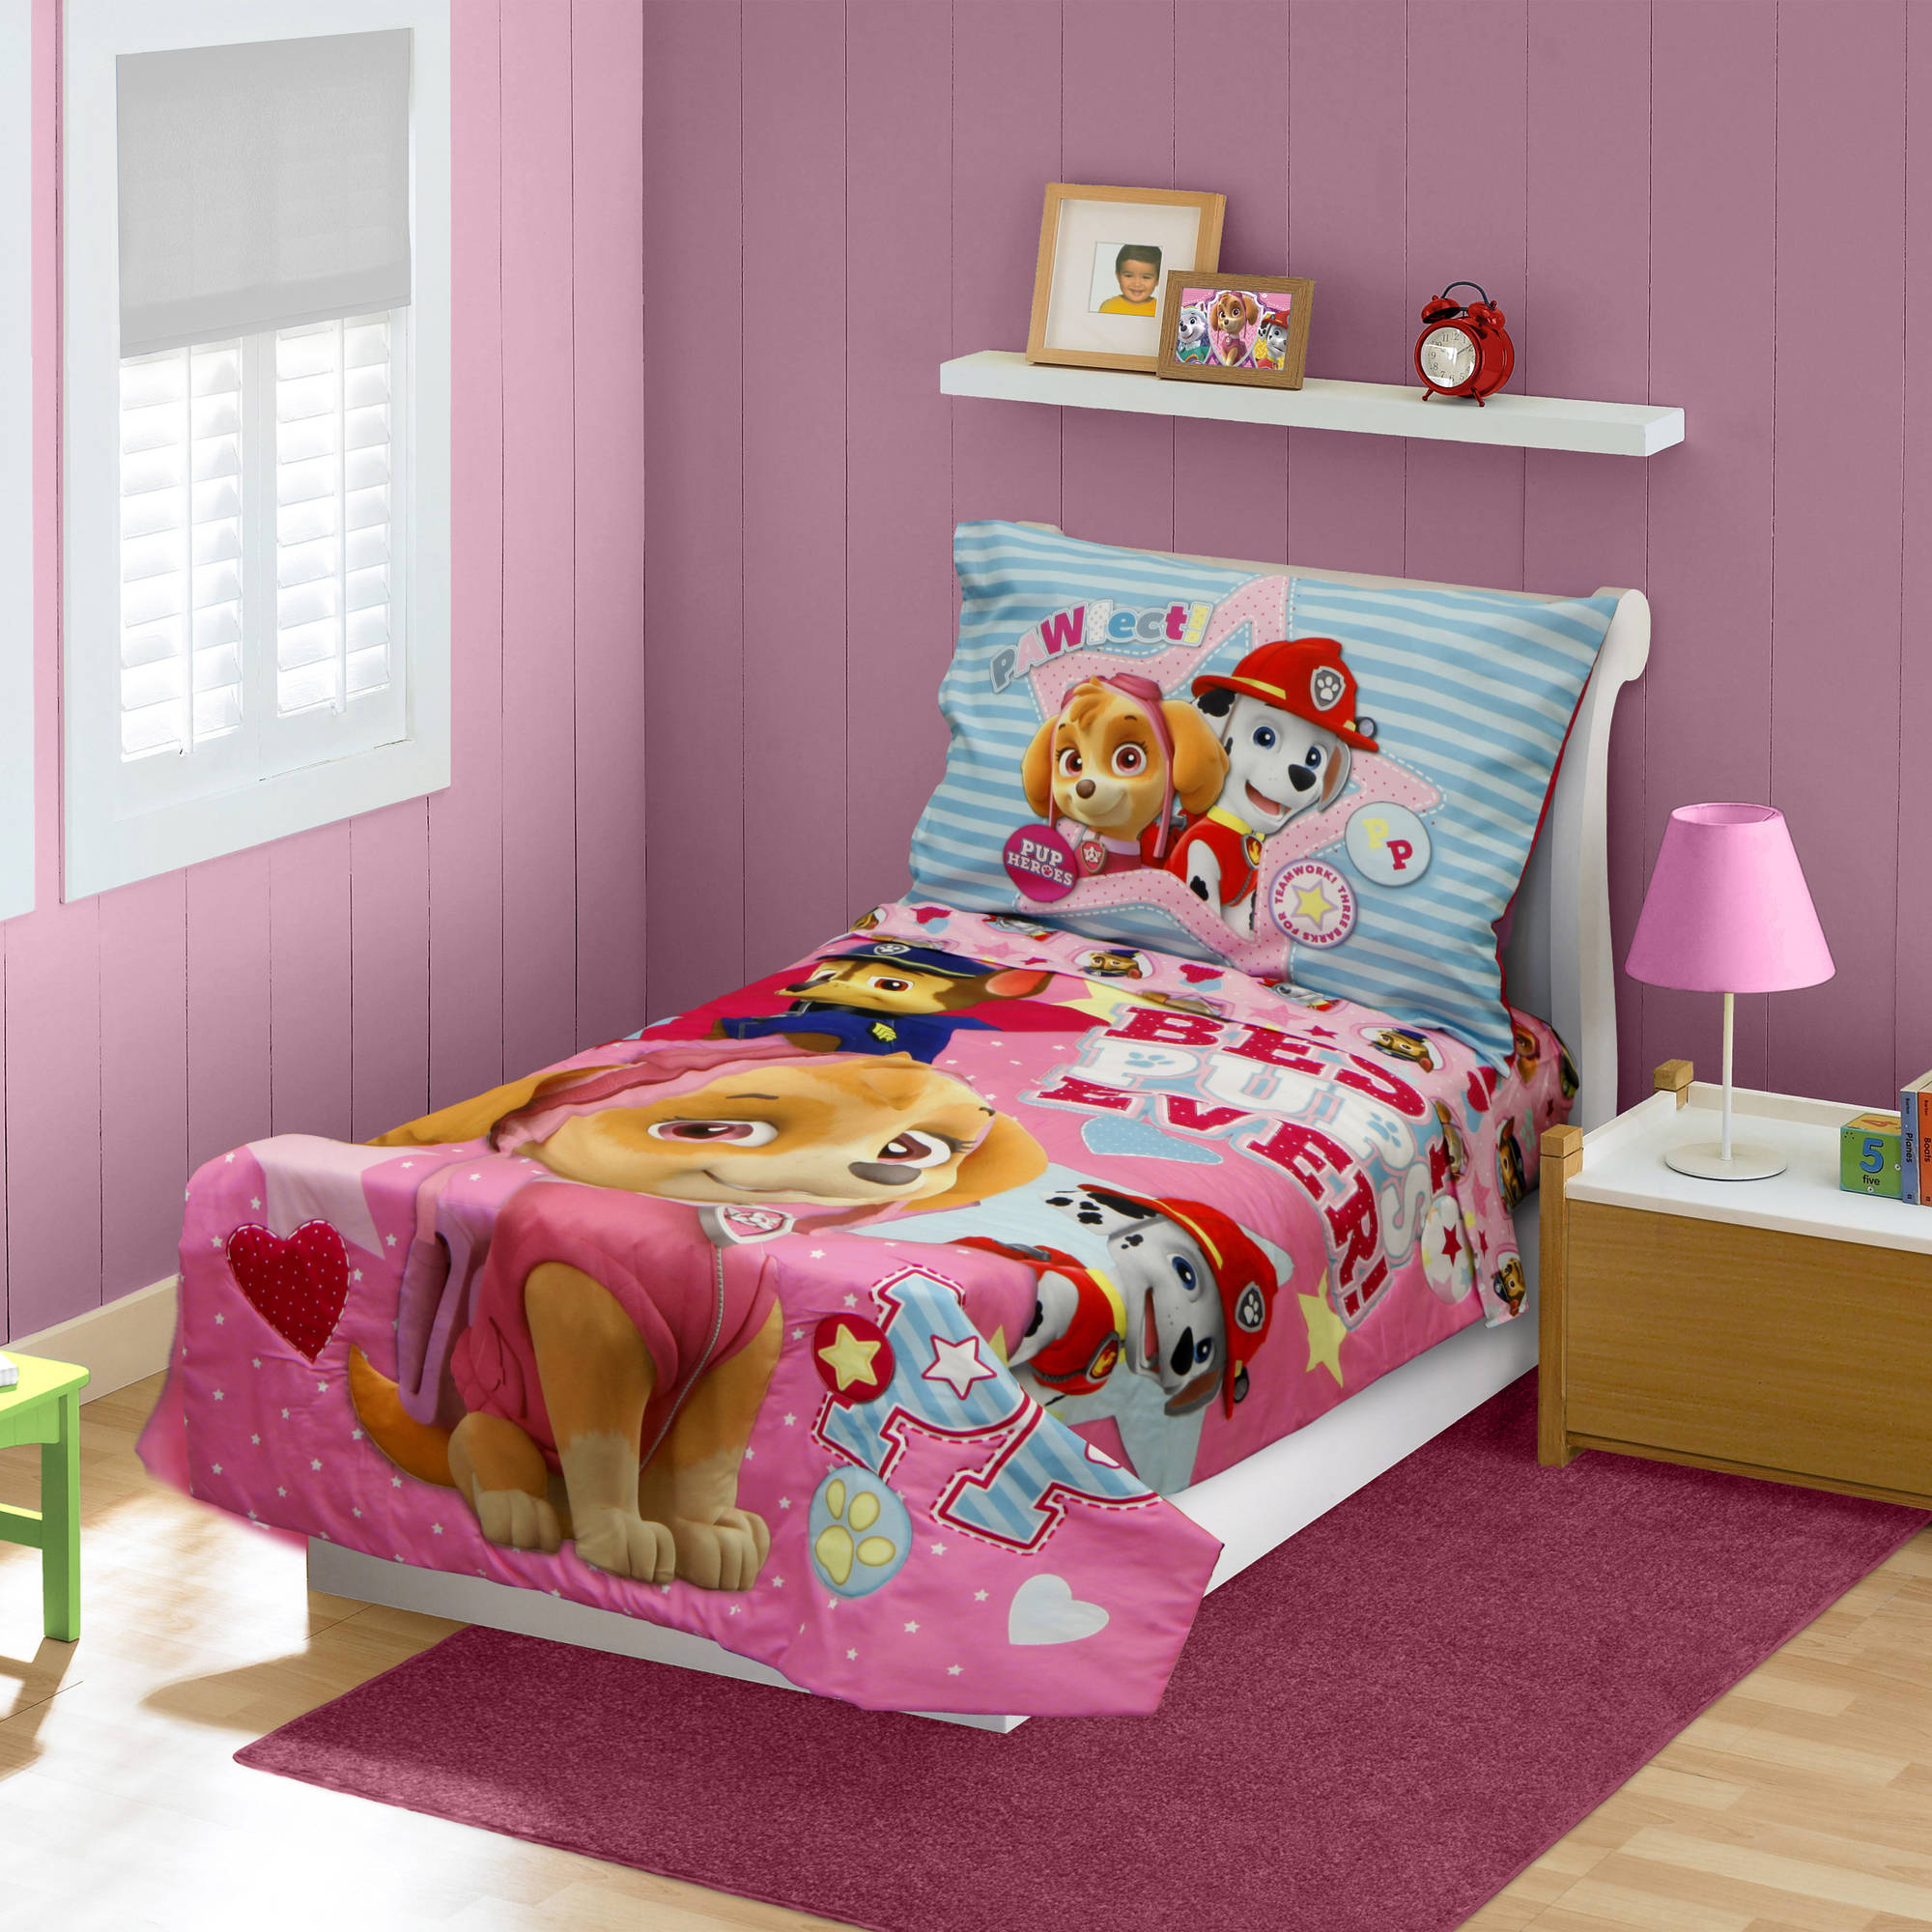 Toddler Bed Sets For Girls